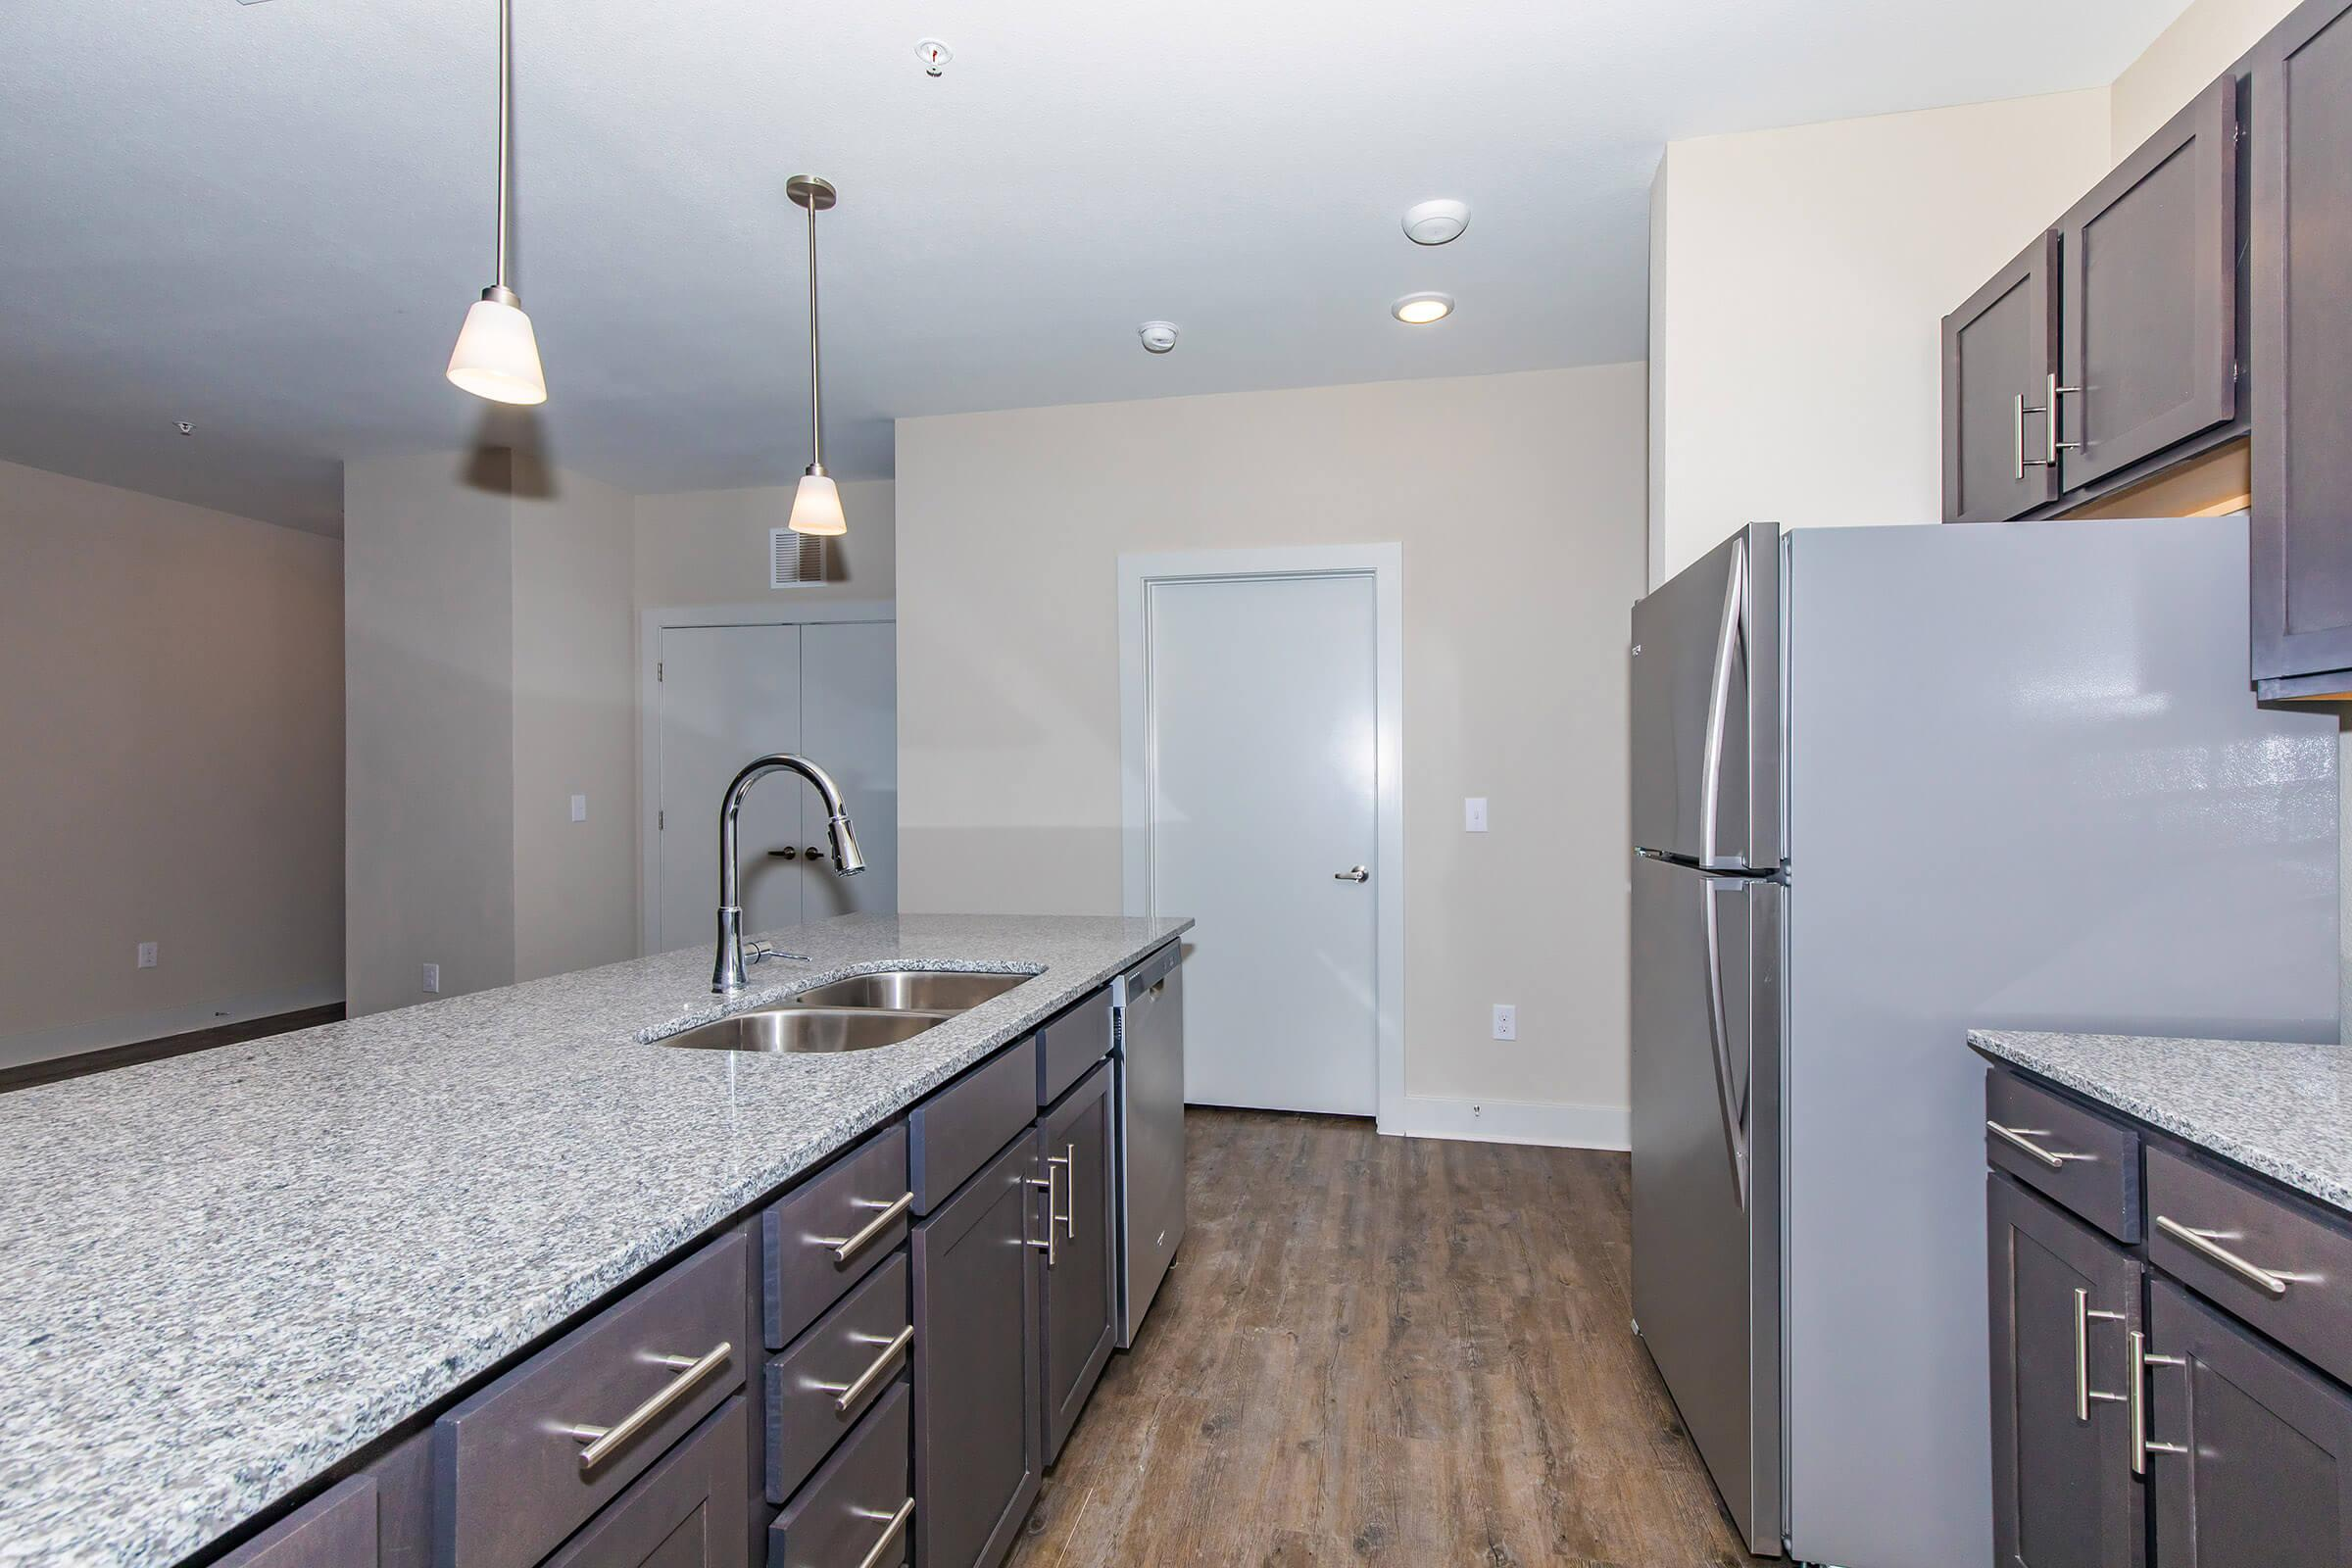 kitchens in our active adult living community